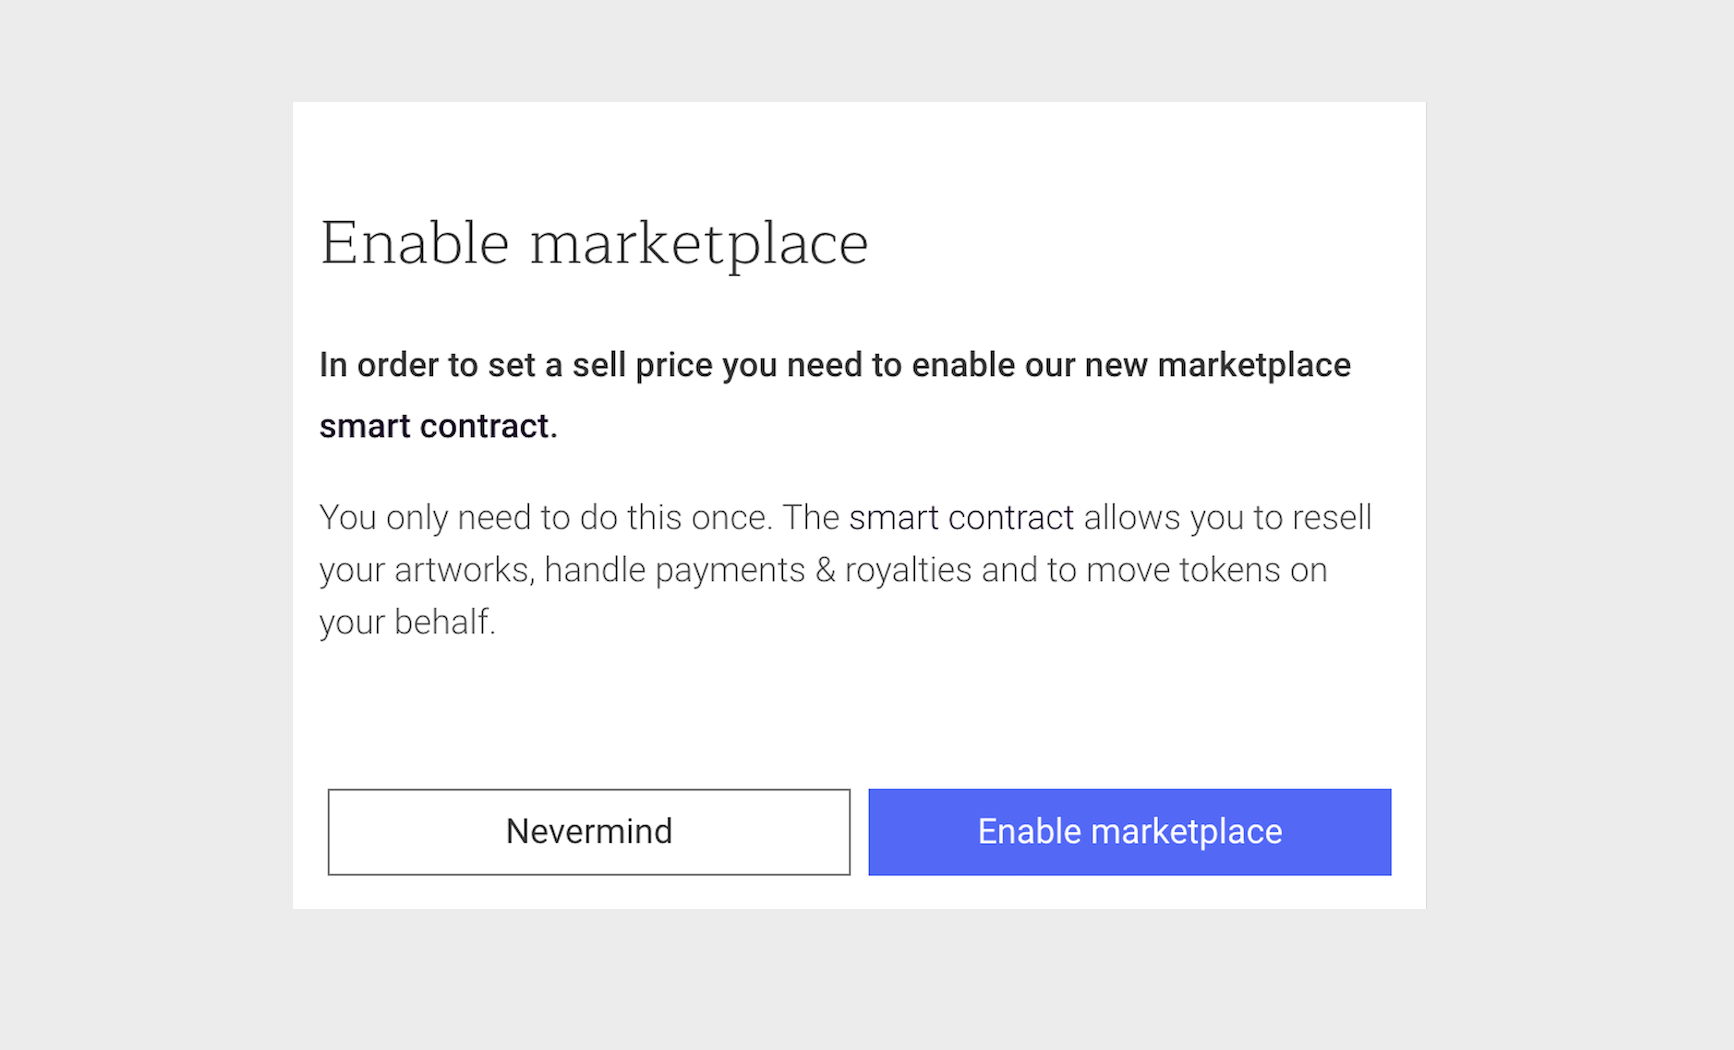 enabling marketplace smart contract